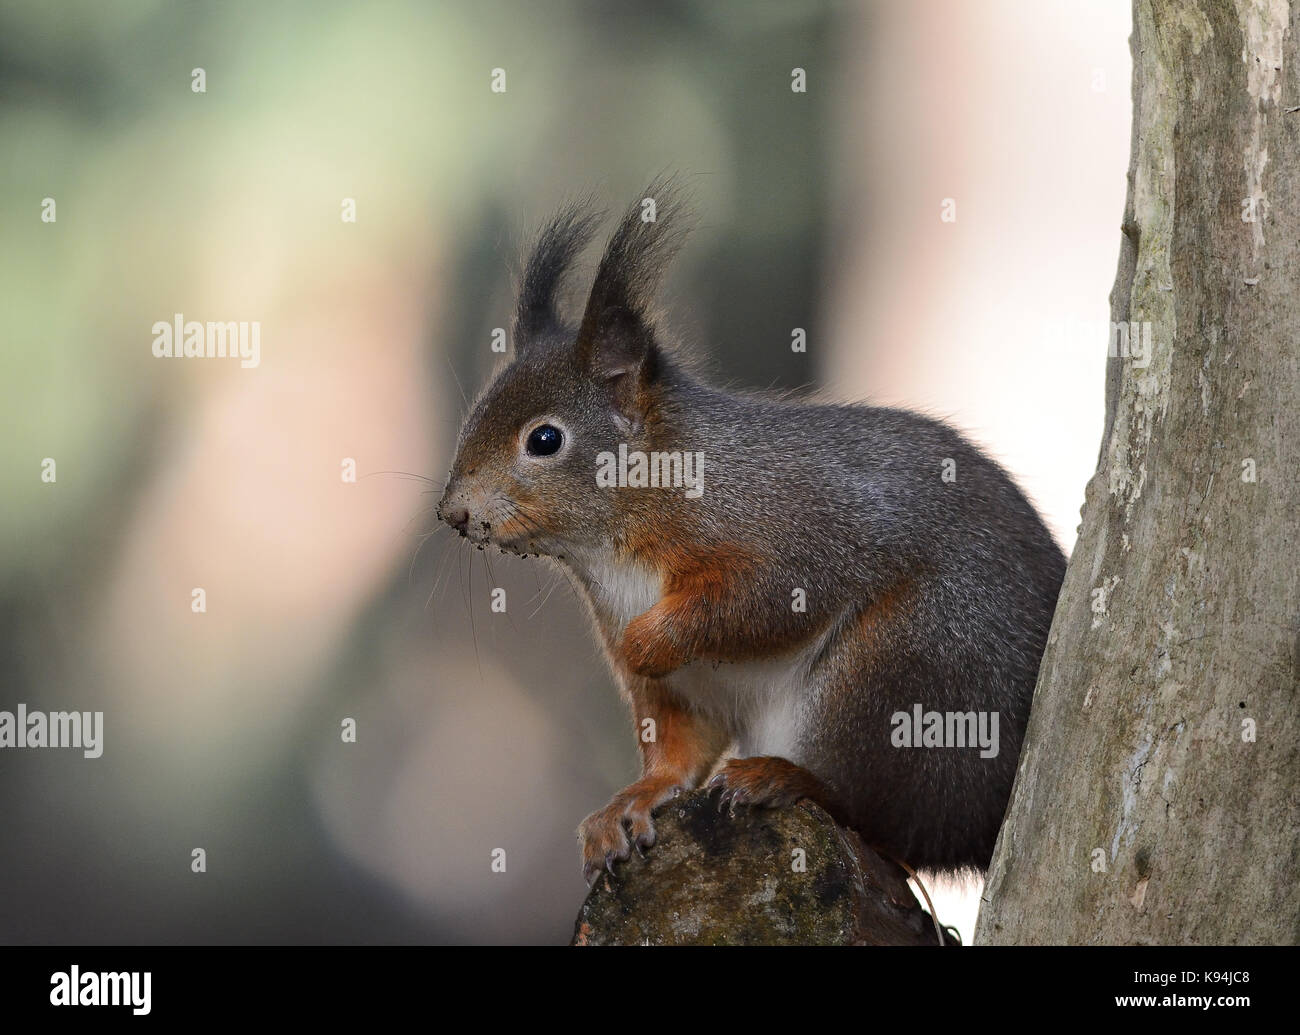 Eurasian red squirrel in their natural environment of a pine tree wood forest - Stock Image